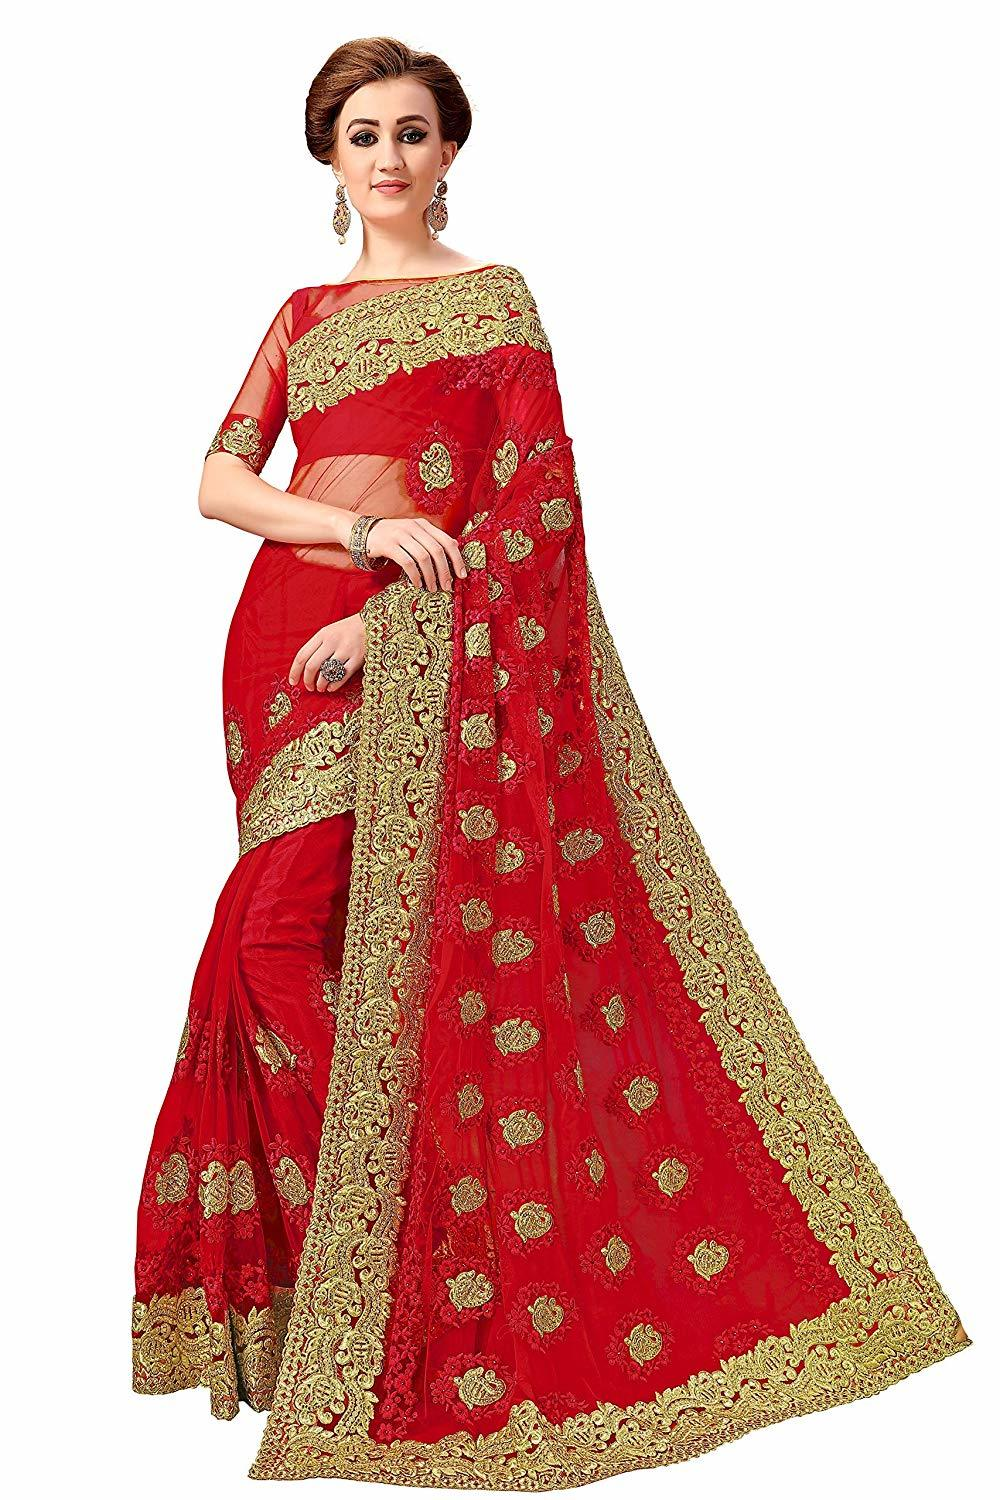 Heavy Embroidered Net Saree Collection